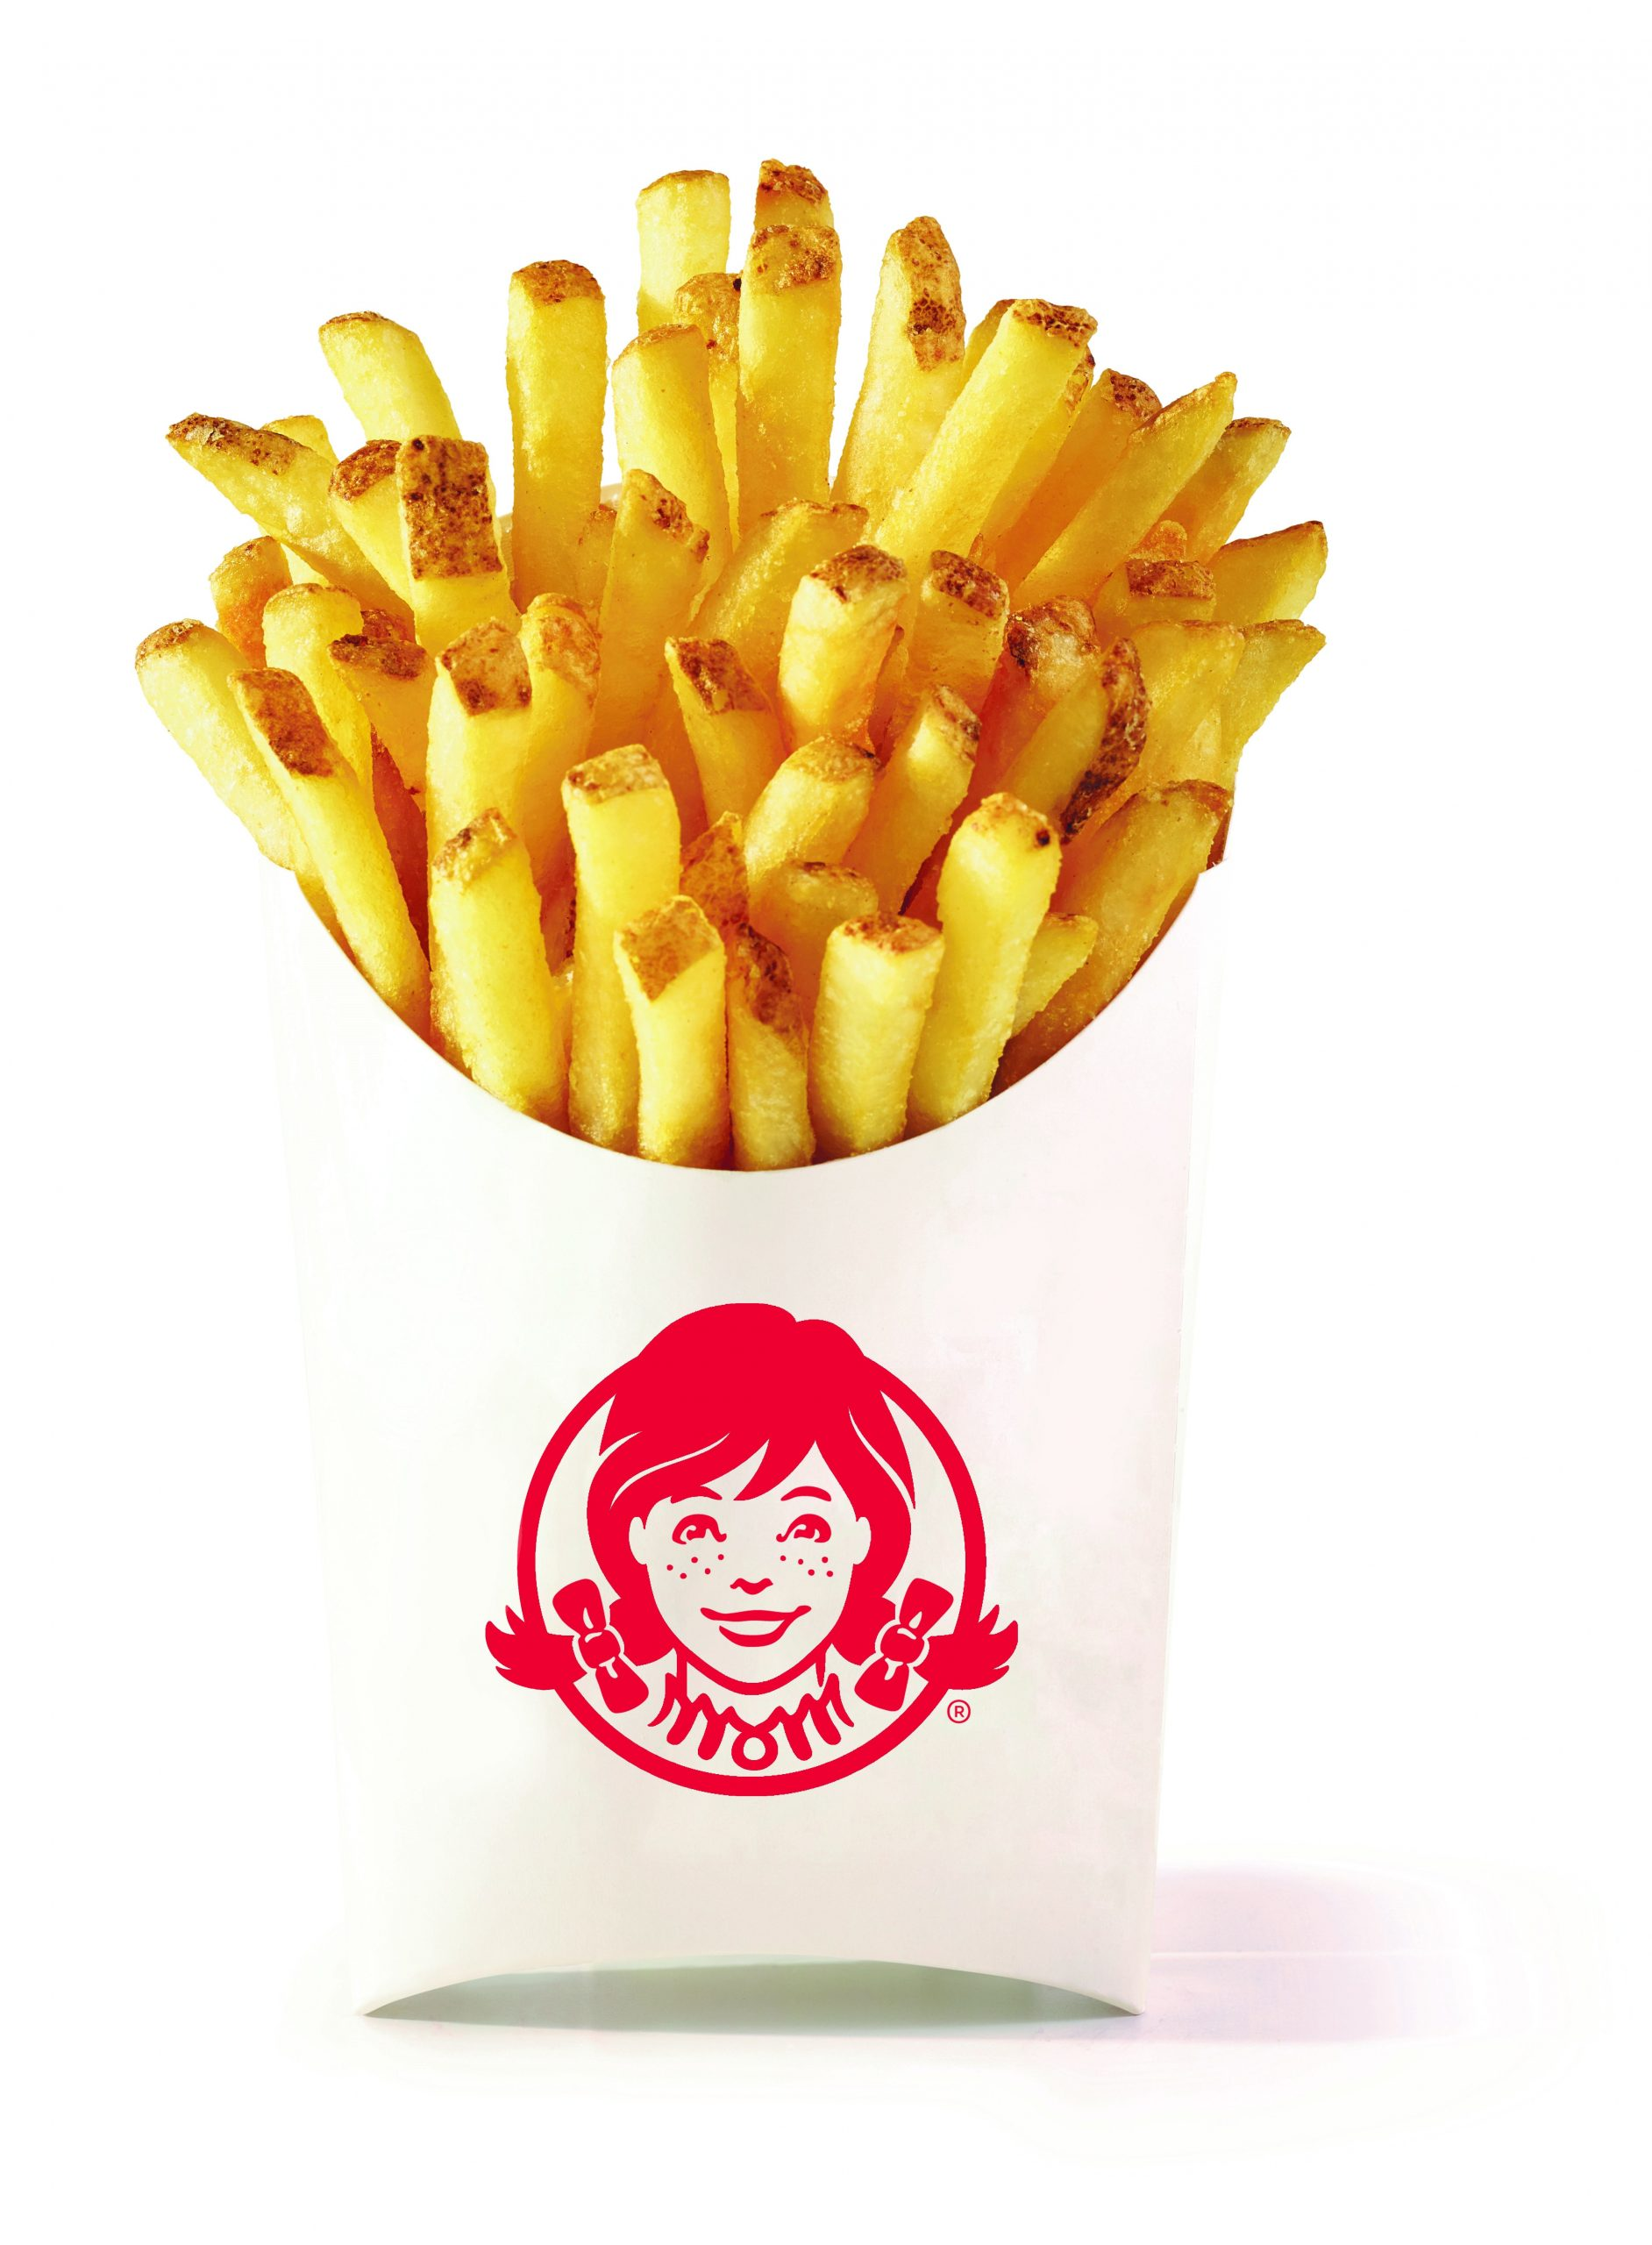 Wendy's upgrading its fries to make them hot and crispy, adding Big Bacon Cheddar Cheeseburger